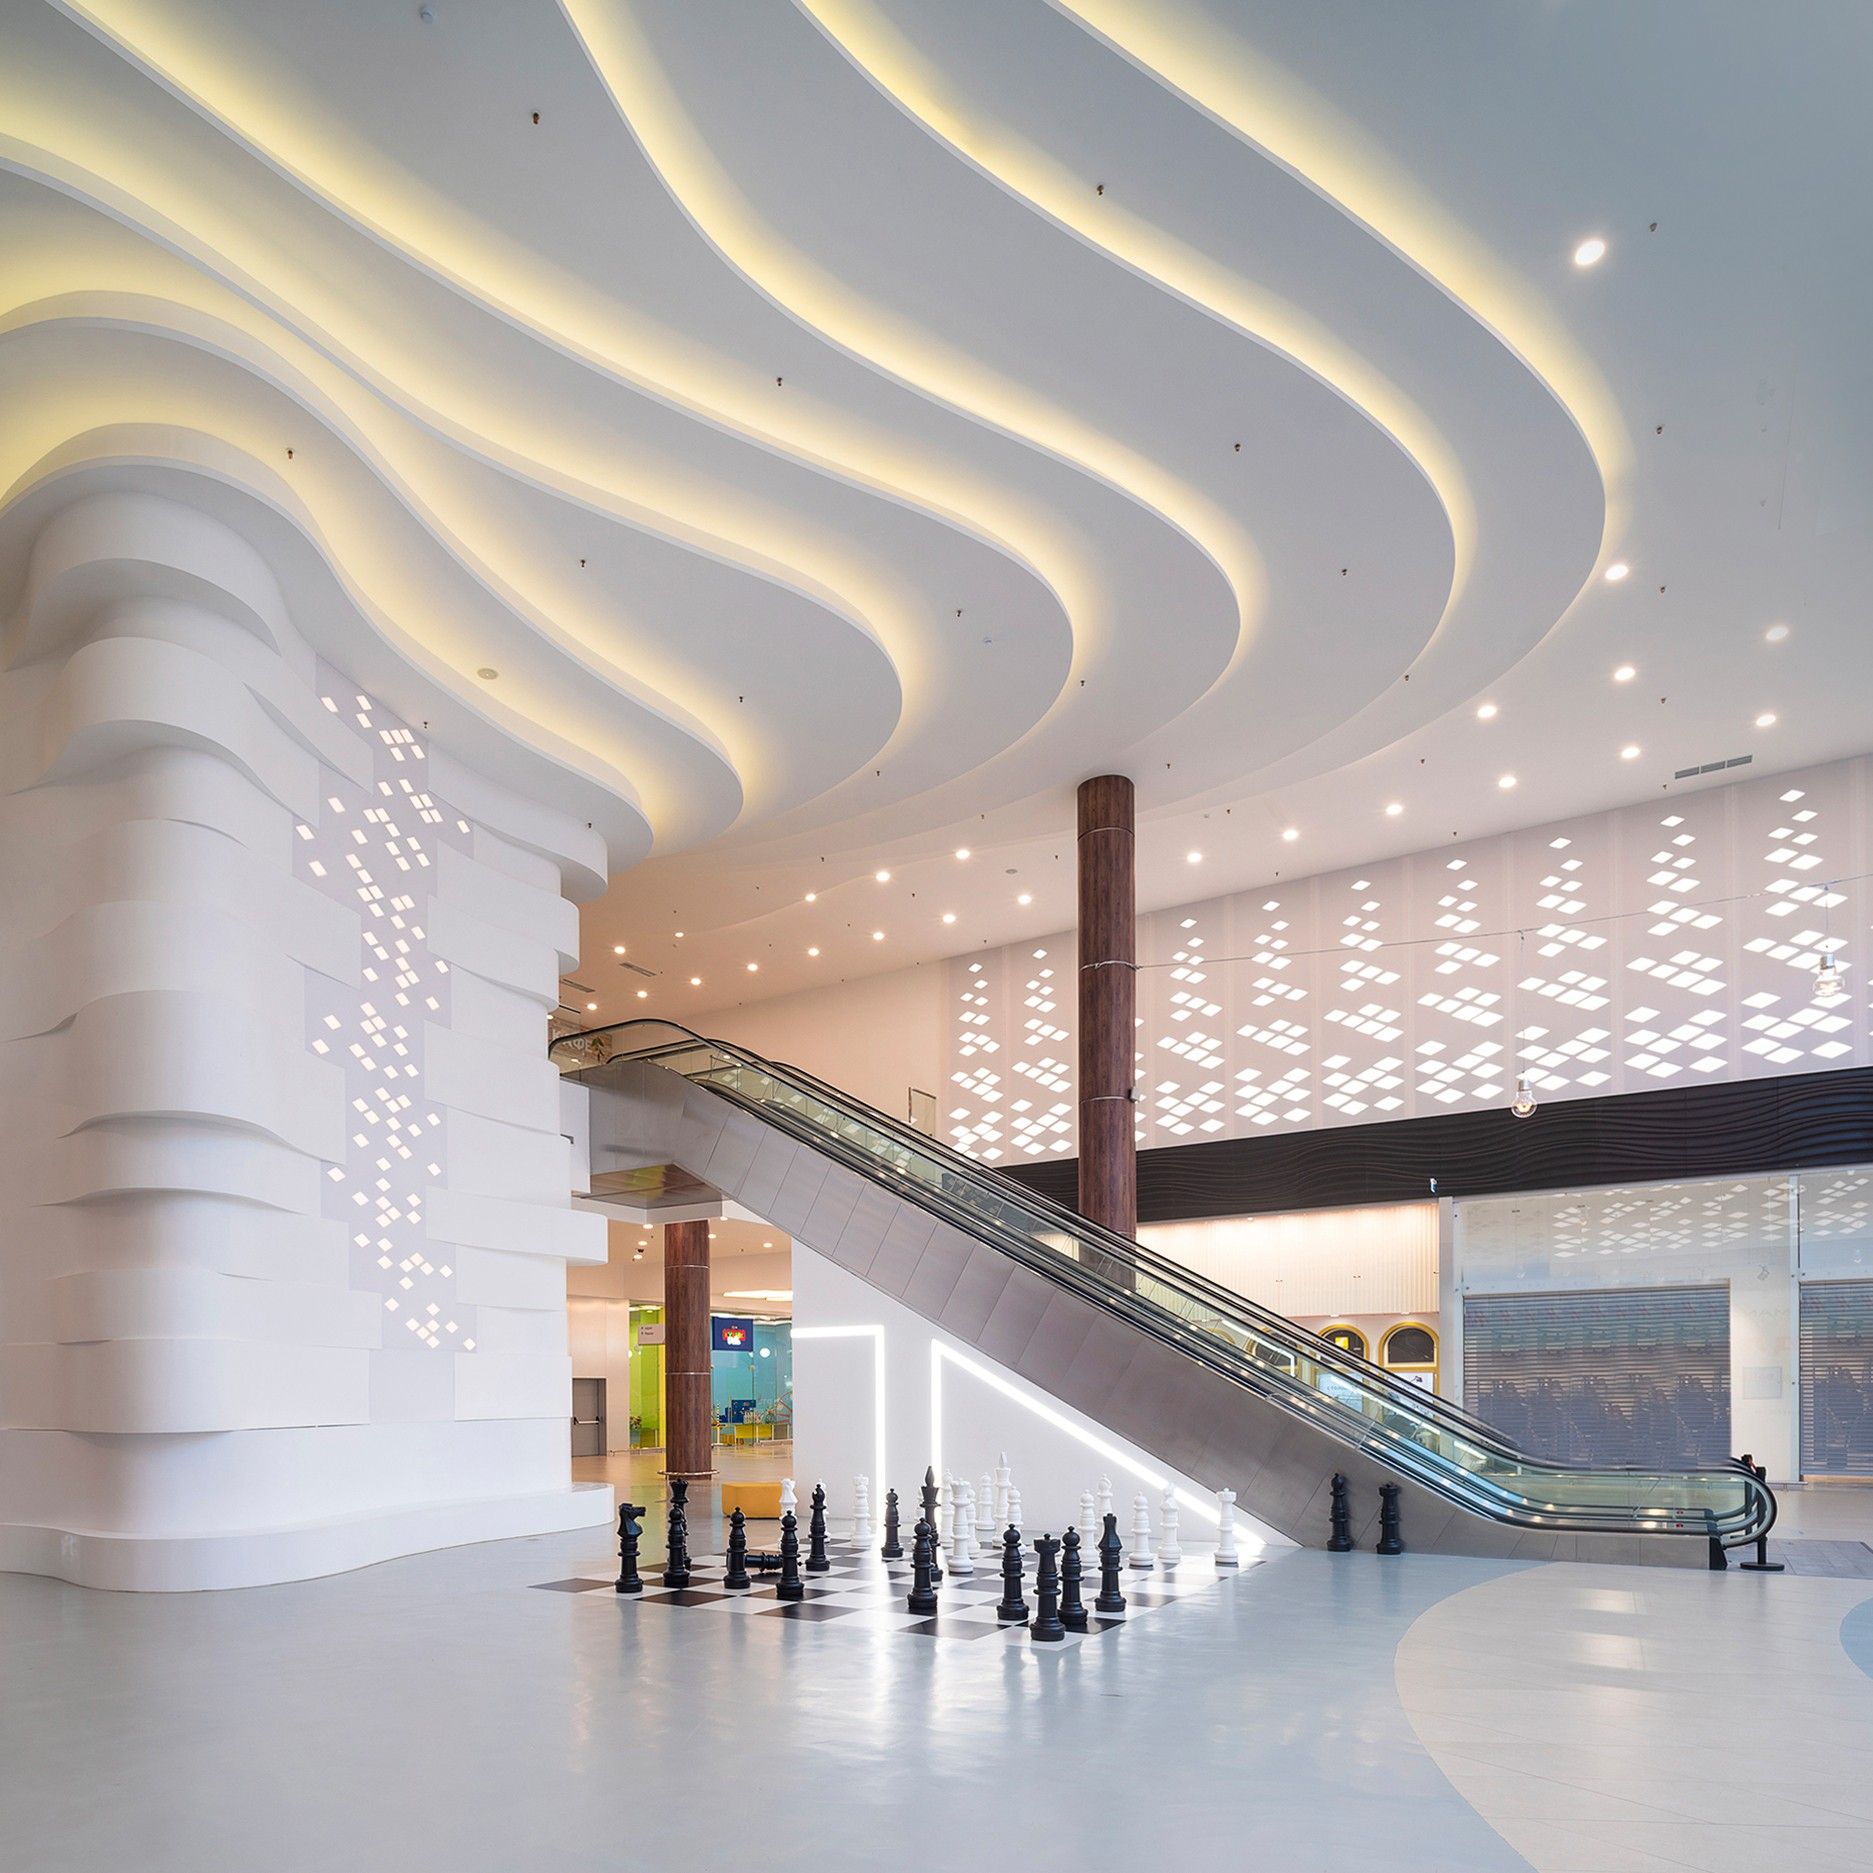 Hall in the mall. Recreation. Interior photographer Kirill Toll